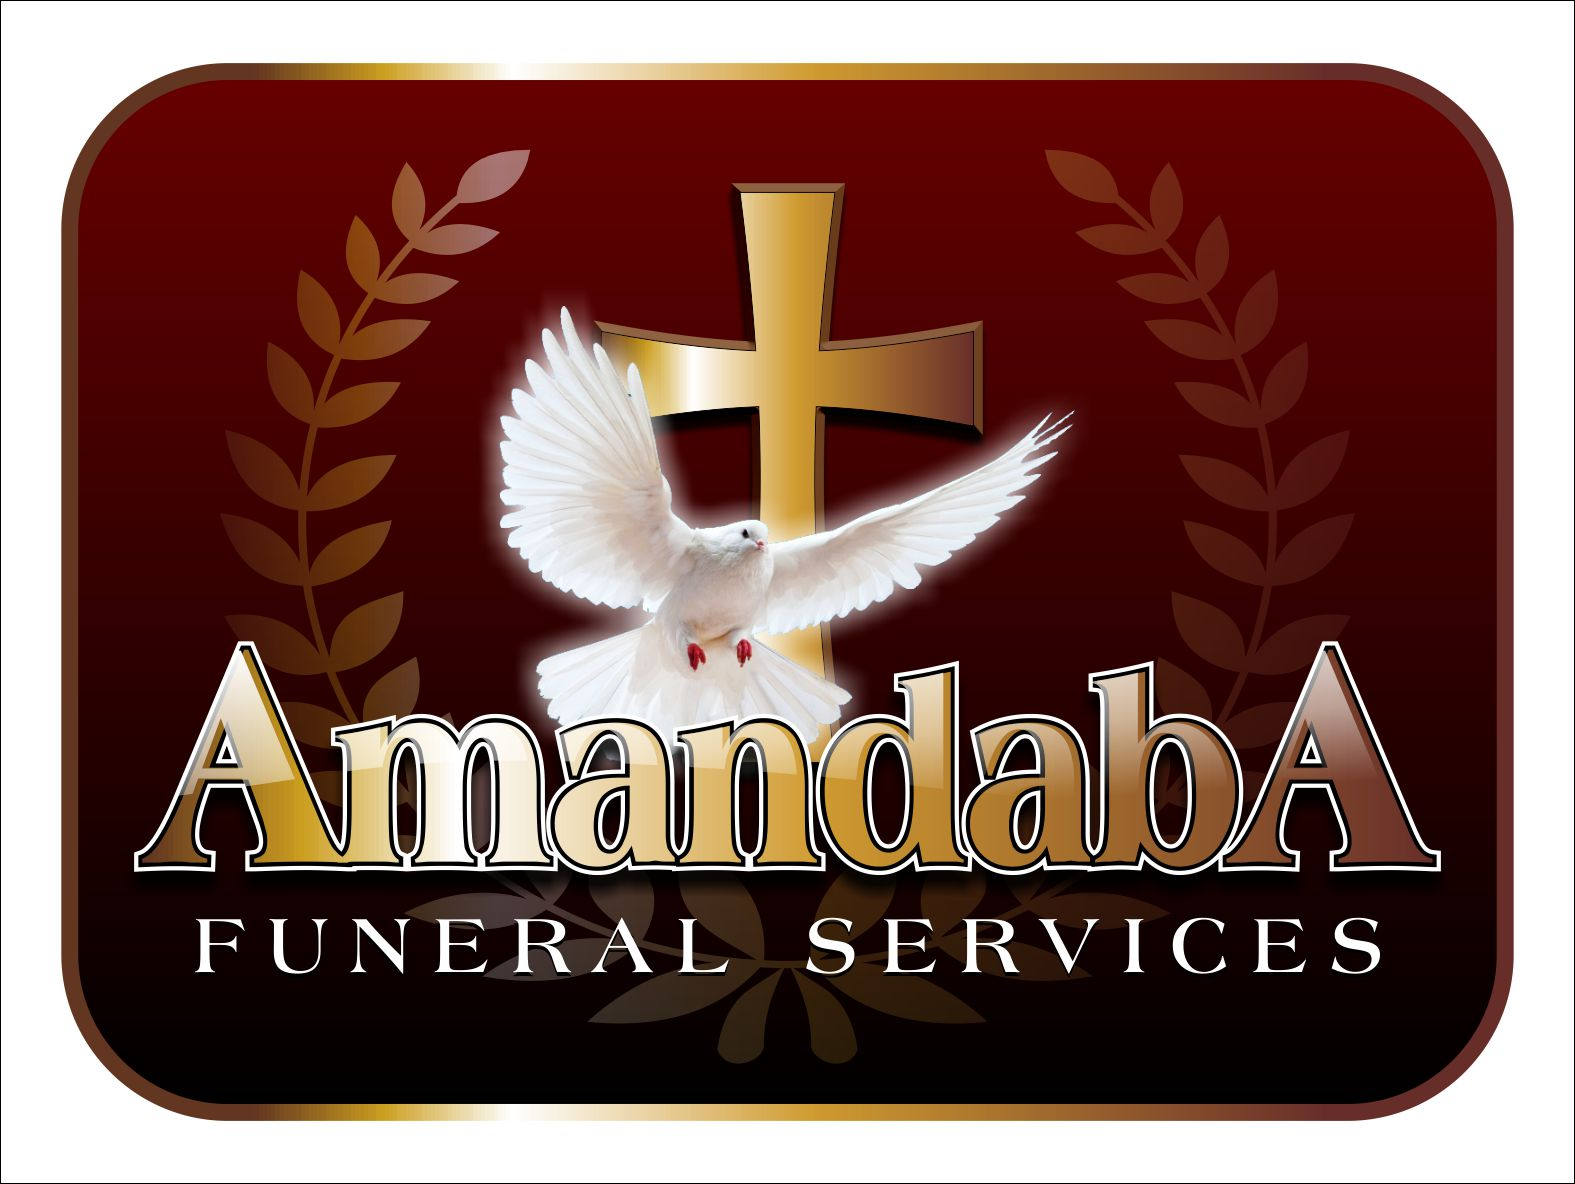 amandaba, logos, designs, religious, religion, christian, funerals, services, christianity, doves, crosses, birds, wreaths,